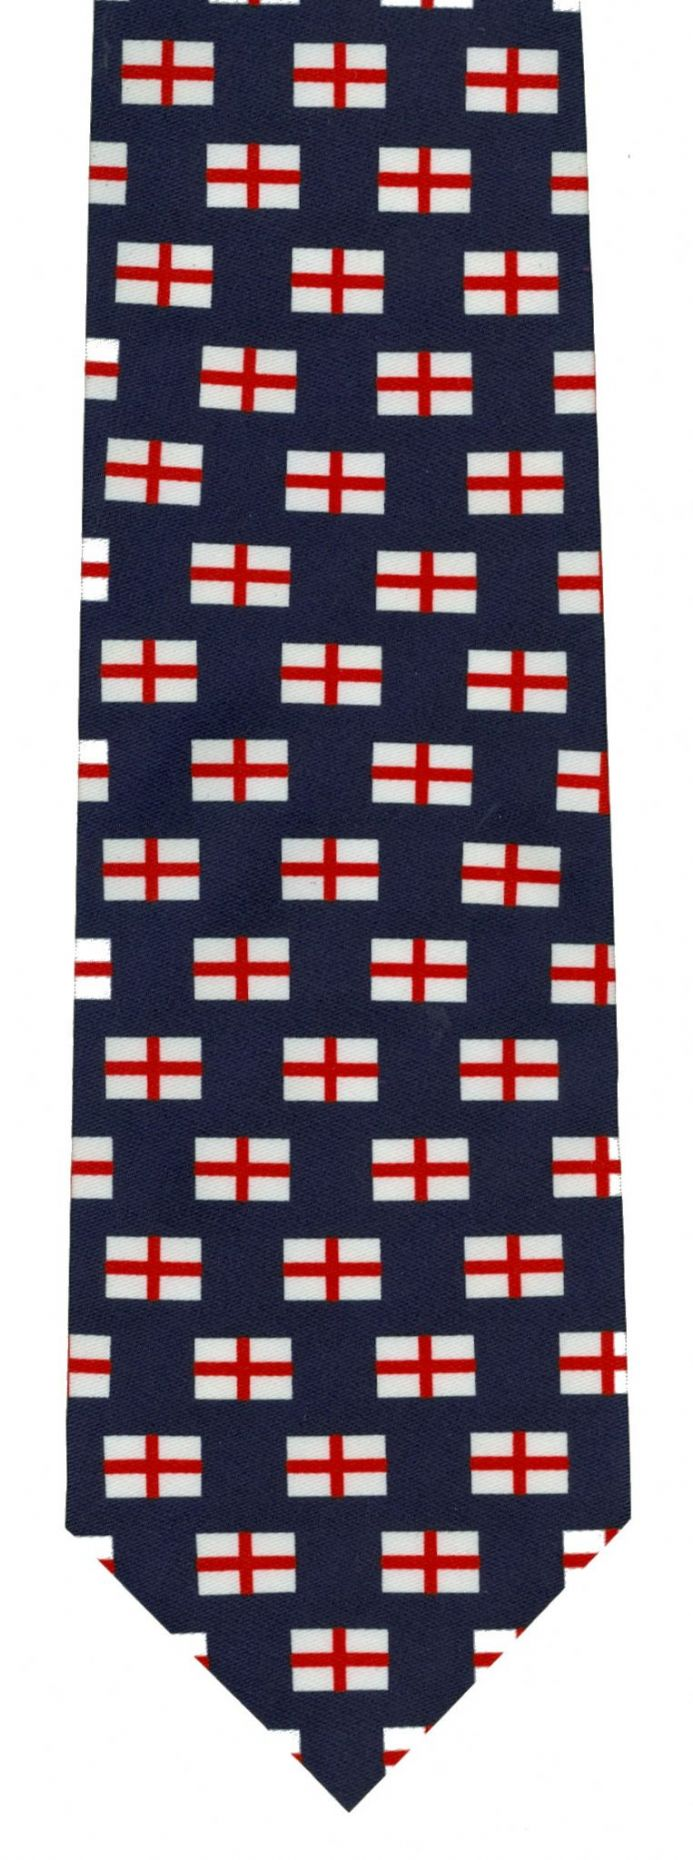 England Tie with Cross of St George design